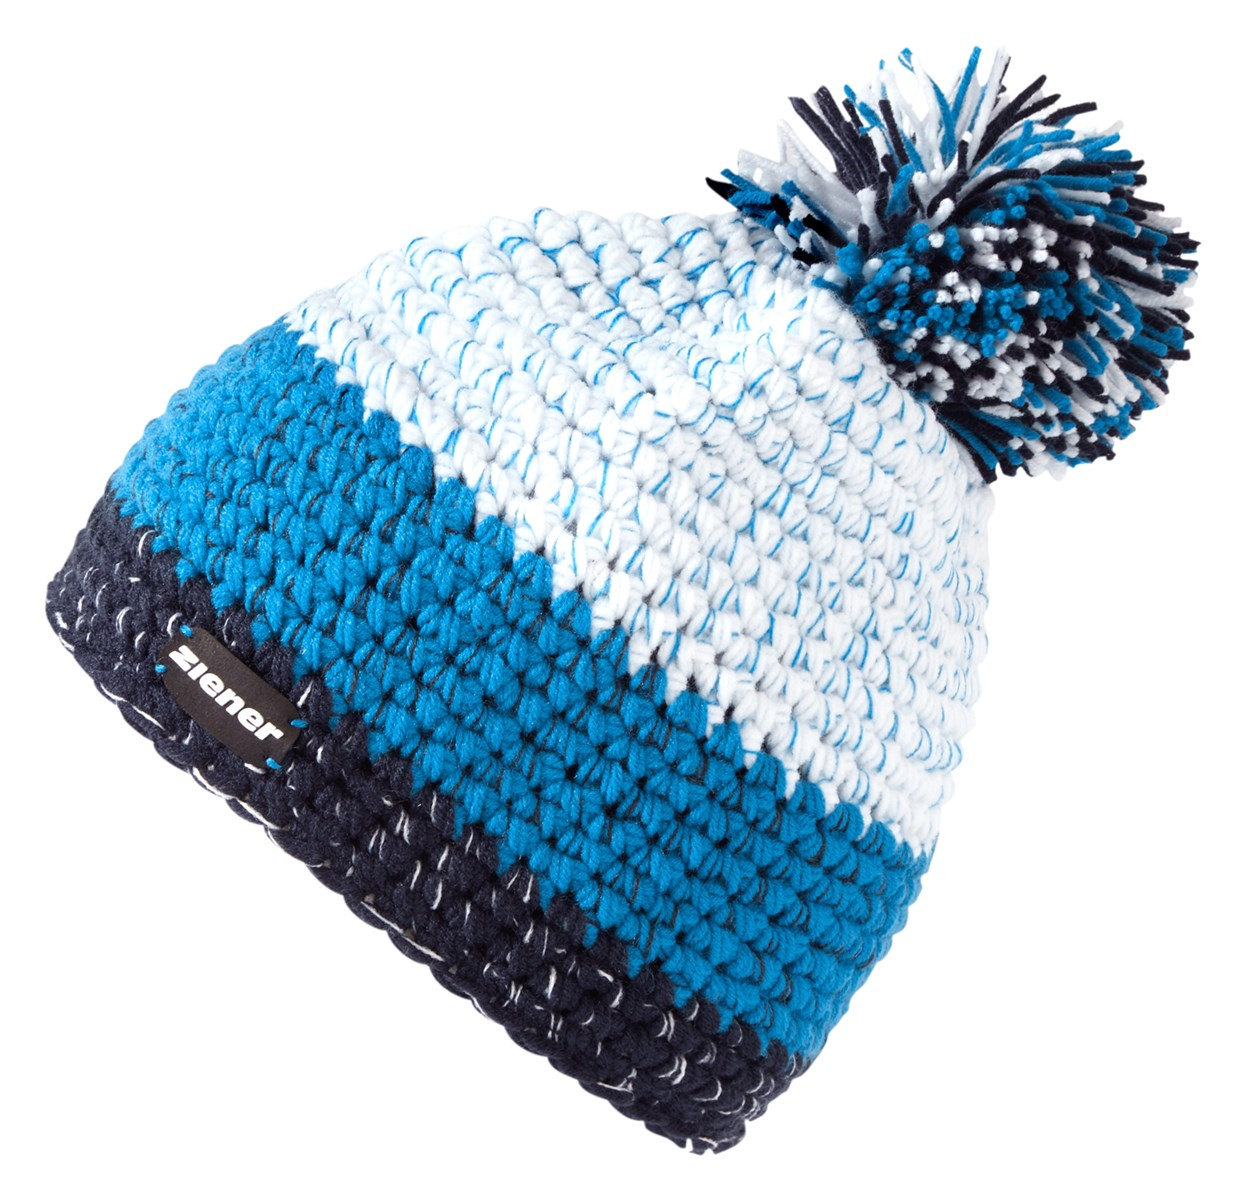 e9b51c652f079 Ziener Intercontinental Mens Beanie Bobble Hat 2019 Blue Navy. 0 (Be the  first to add a review!)